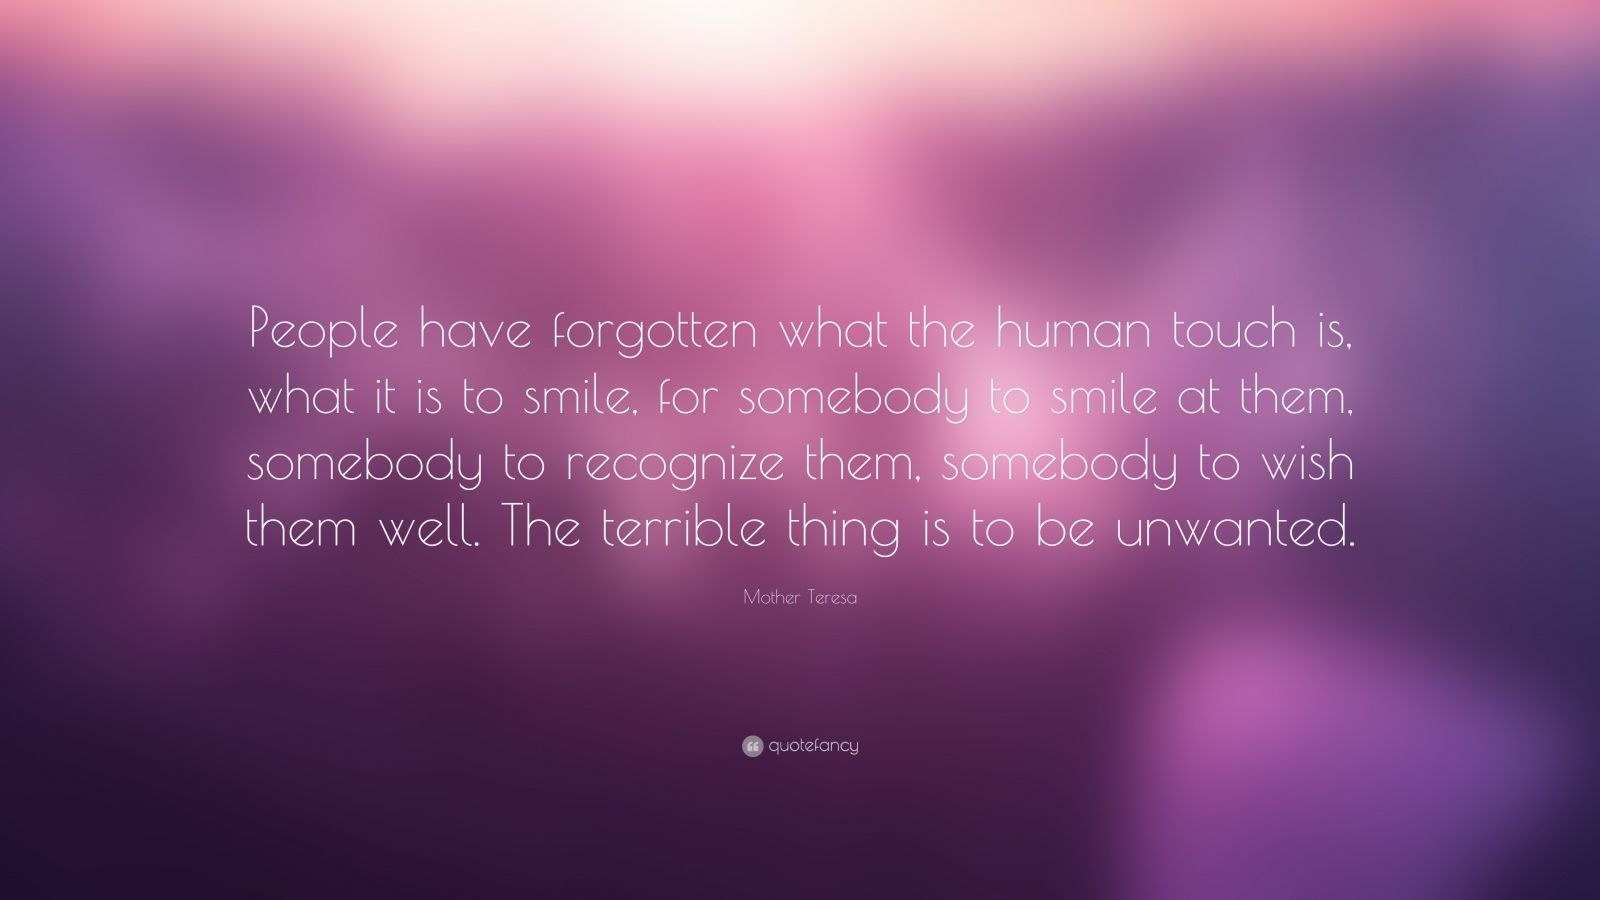 """Mother Teresa Quote: """"People have forgotten what the human touch is, what it is to smile, for somebody to smile at them, somebody to recognize them, somebody to wish them well. The terrible thing is to be unwanted."""""""